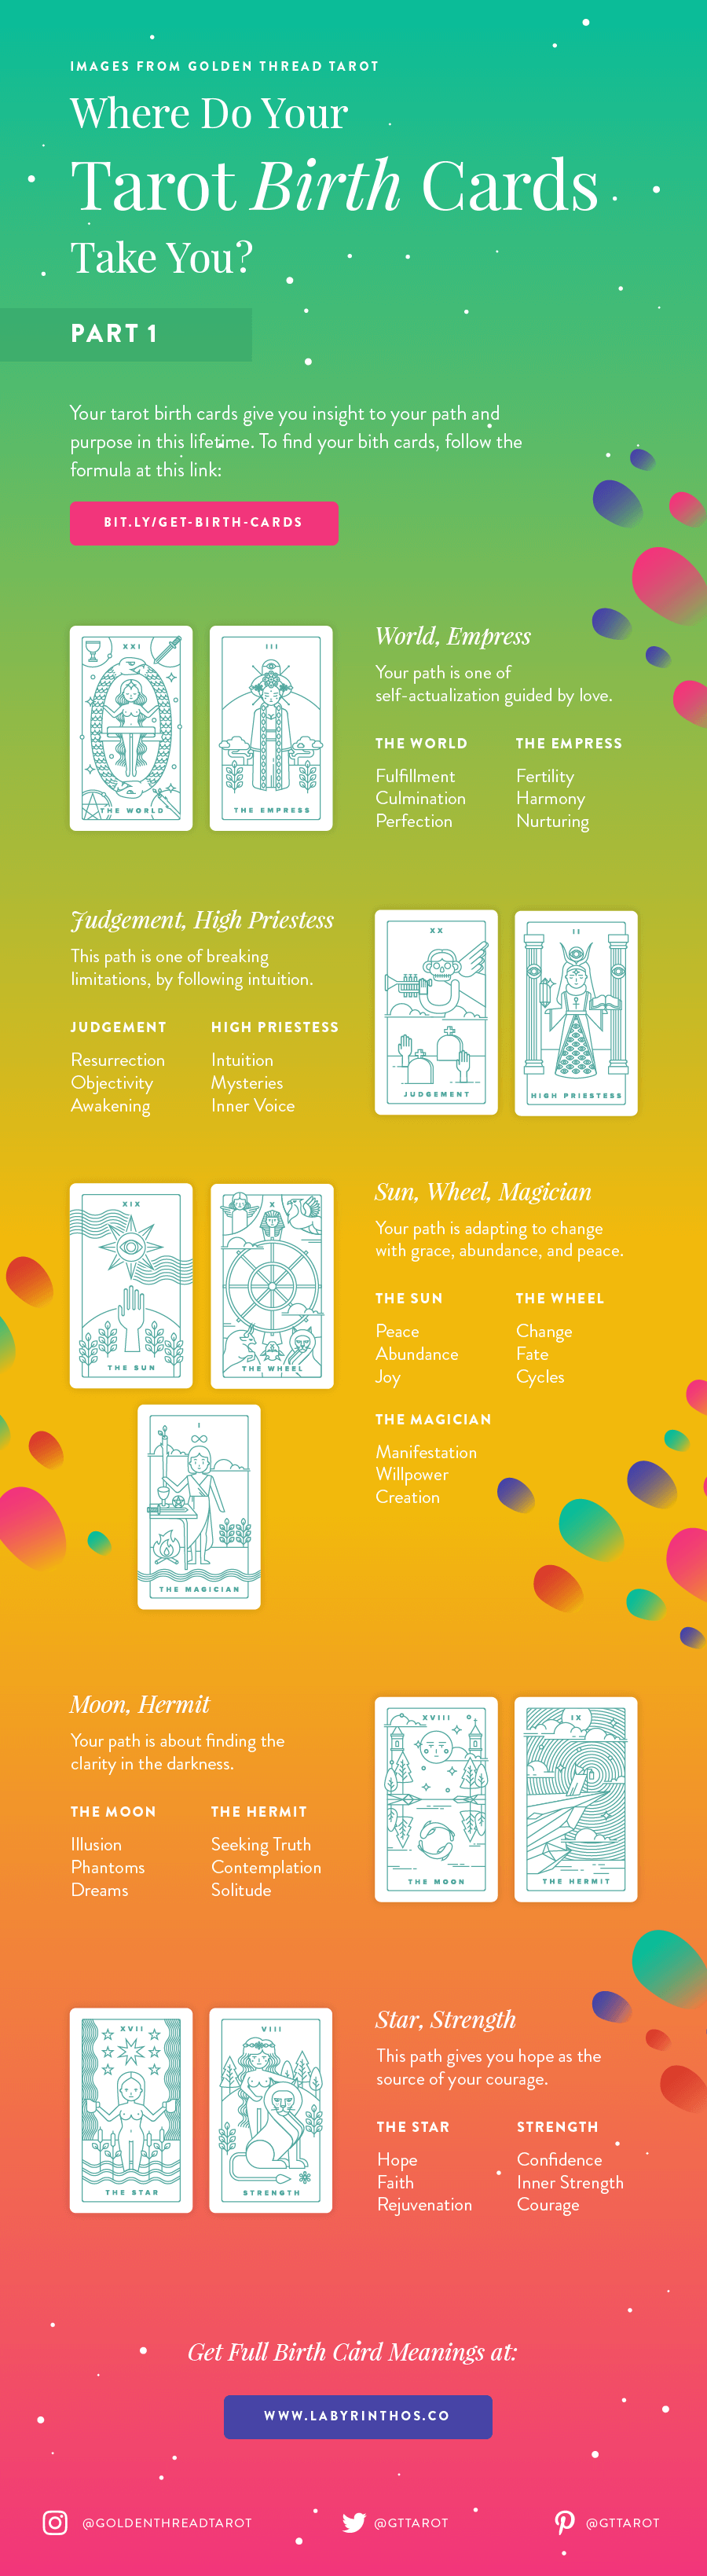 Tarot birth card meanings infographic - part 1